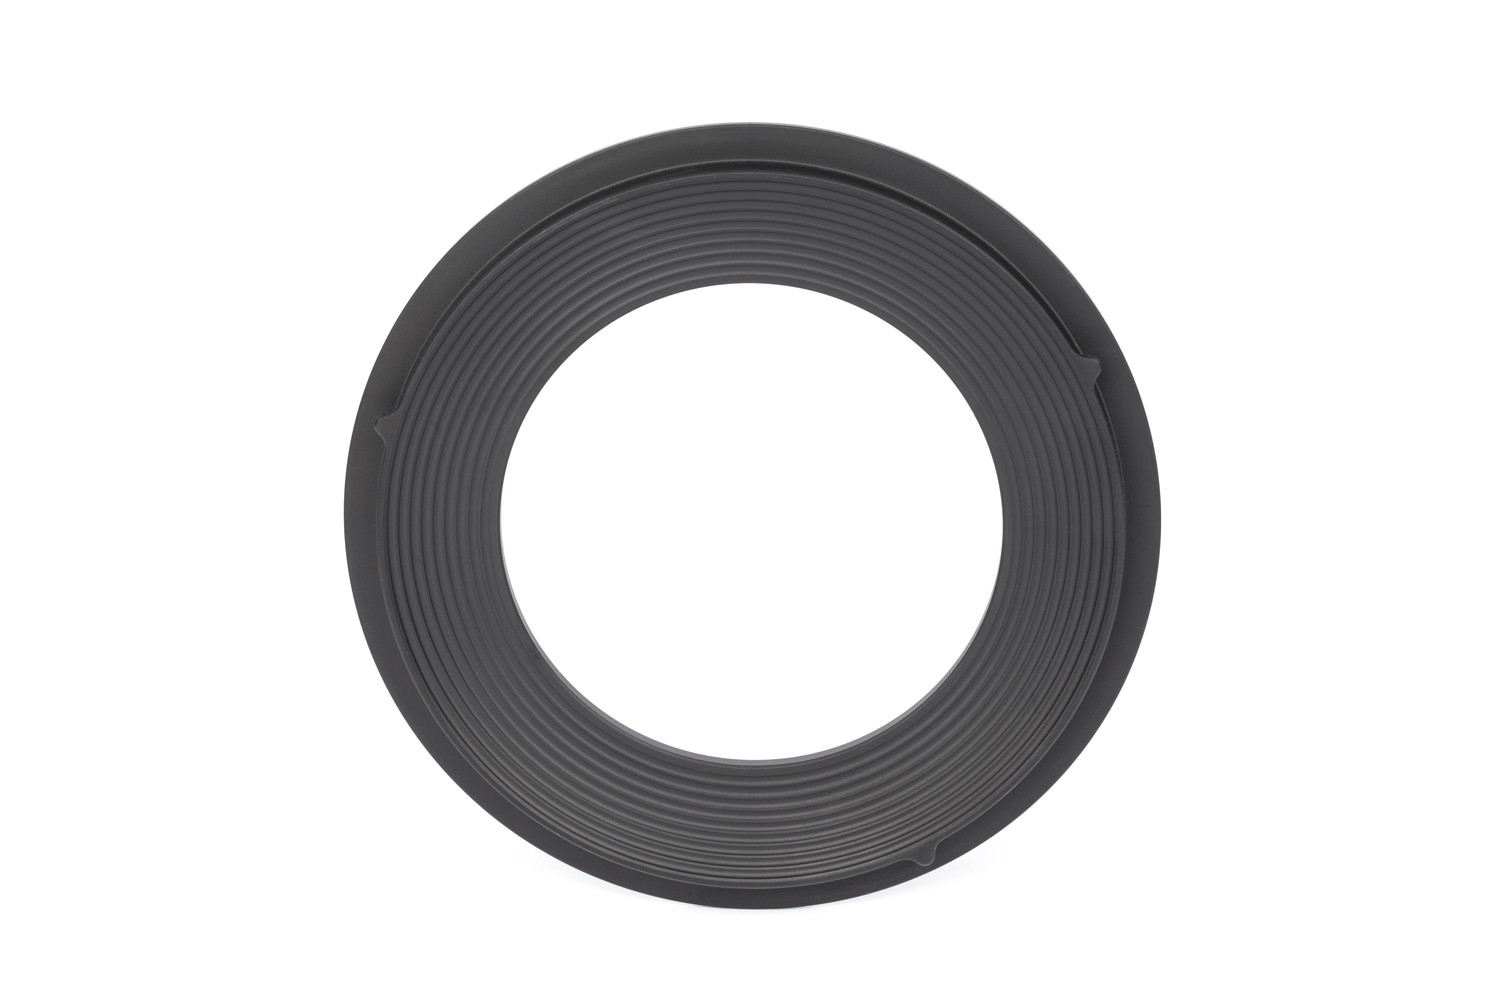 Haida 72mm Metal Adapter ring for 150 Series Filter Holder…